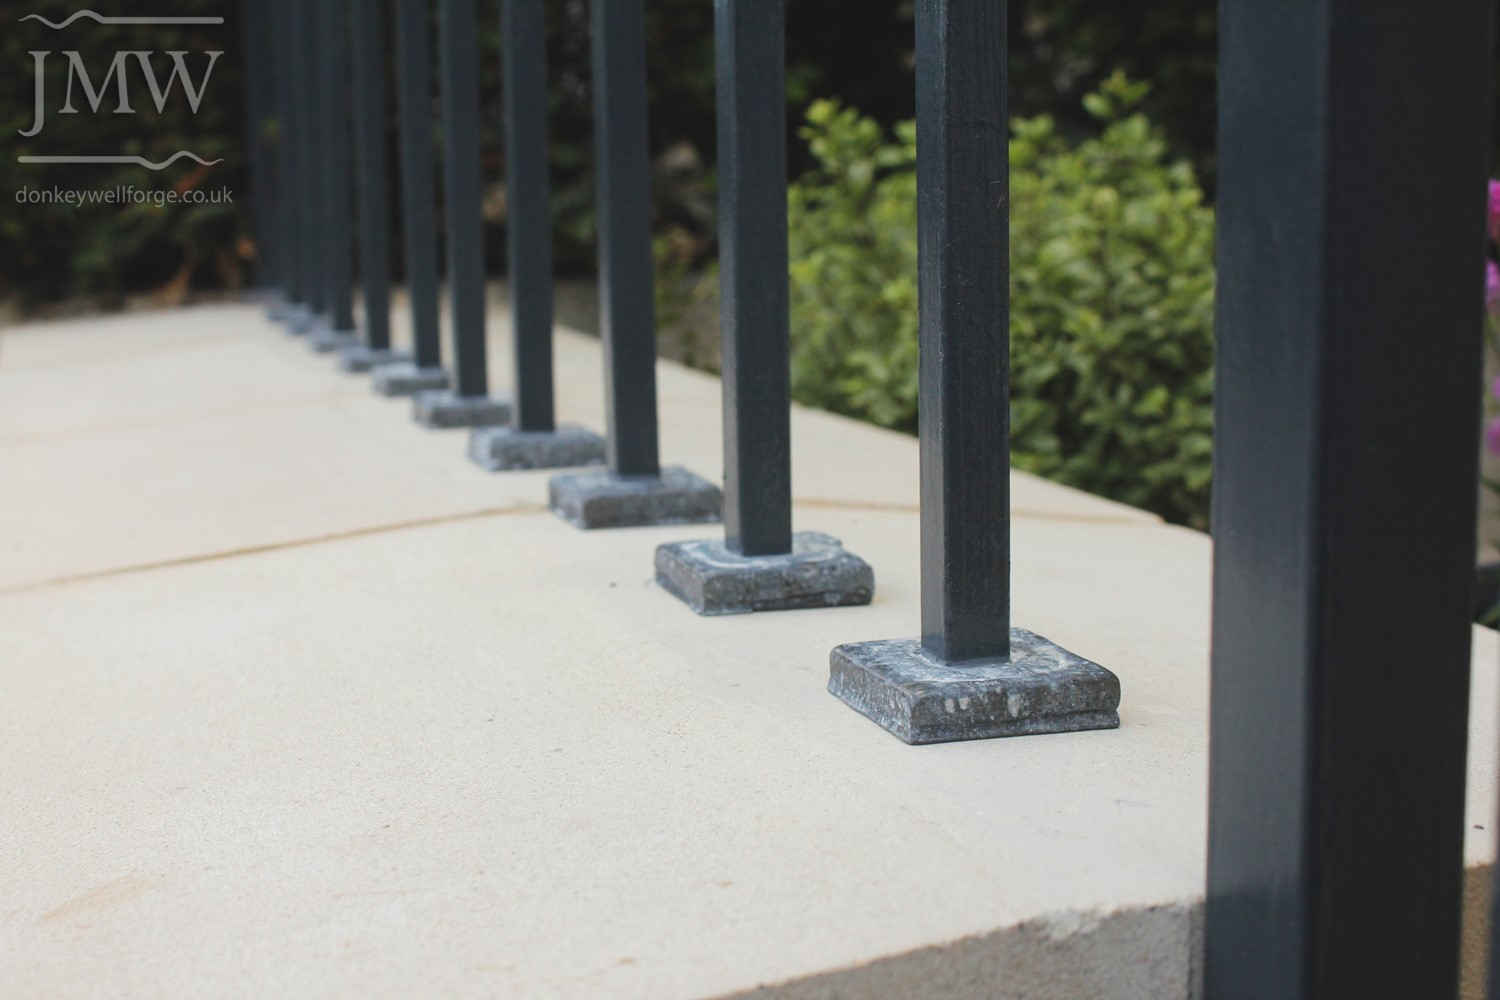 forged-ironwork-railings-gate-lead